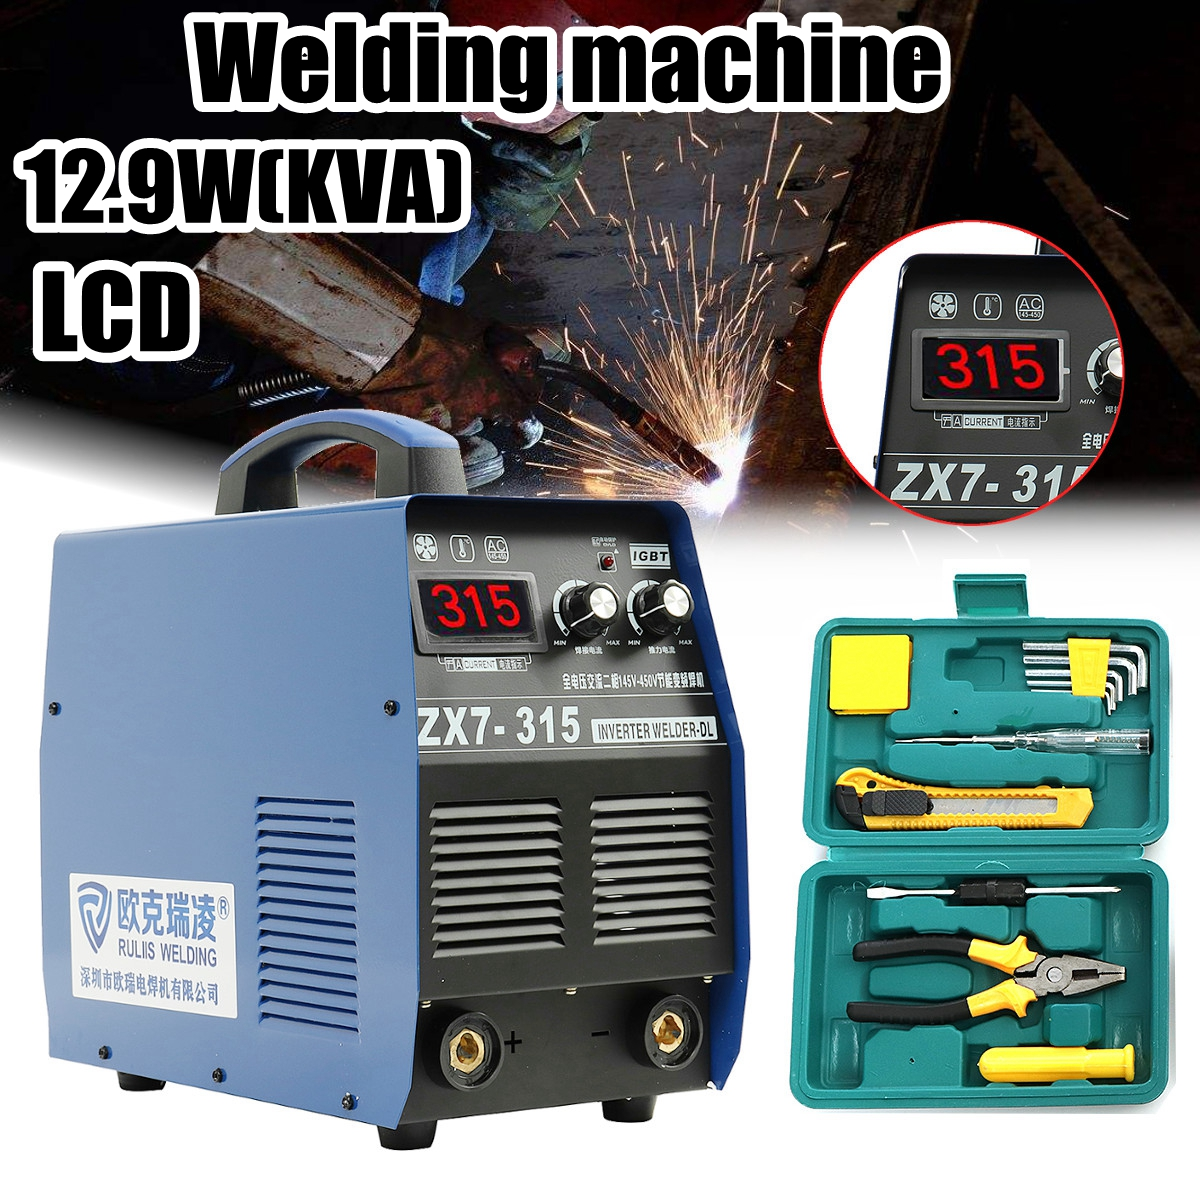 12.9W Welding Inverter Machine Tool MMA/ARC Portable Welder 220V/380V DC IGBT Single tube IGBT LCD inverter welder new manual argon inverter igbt arc welder mma dc tig welding inverter machine